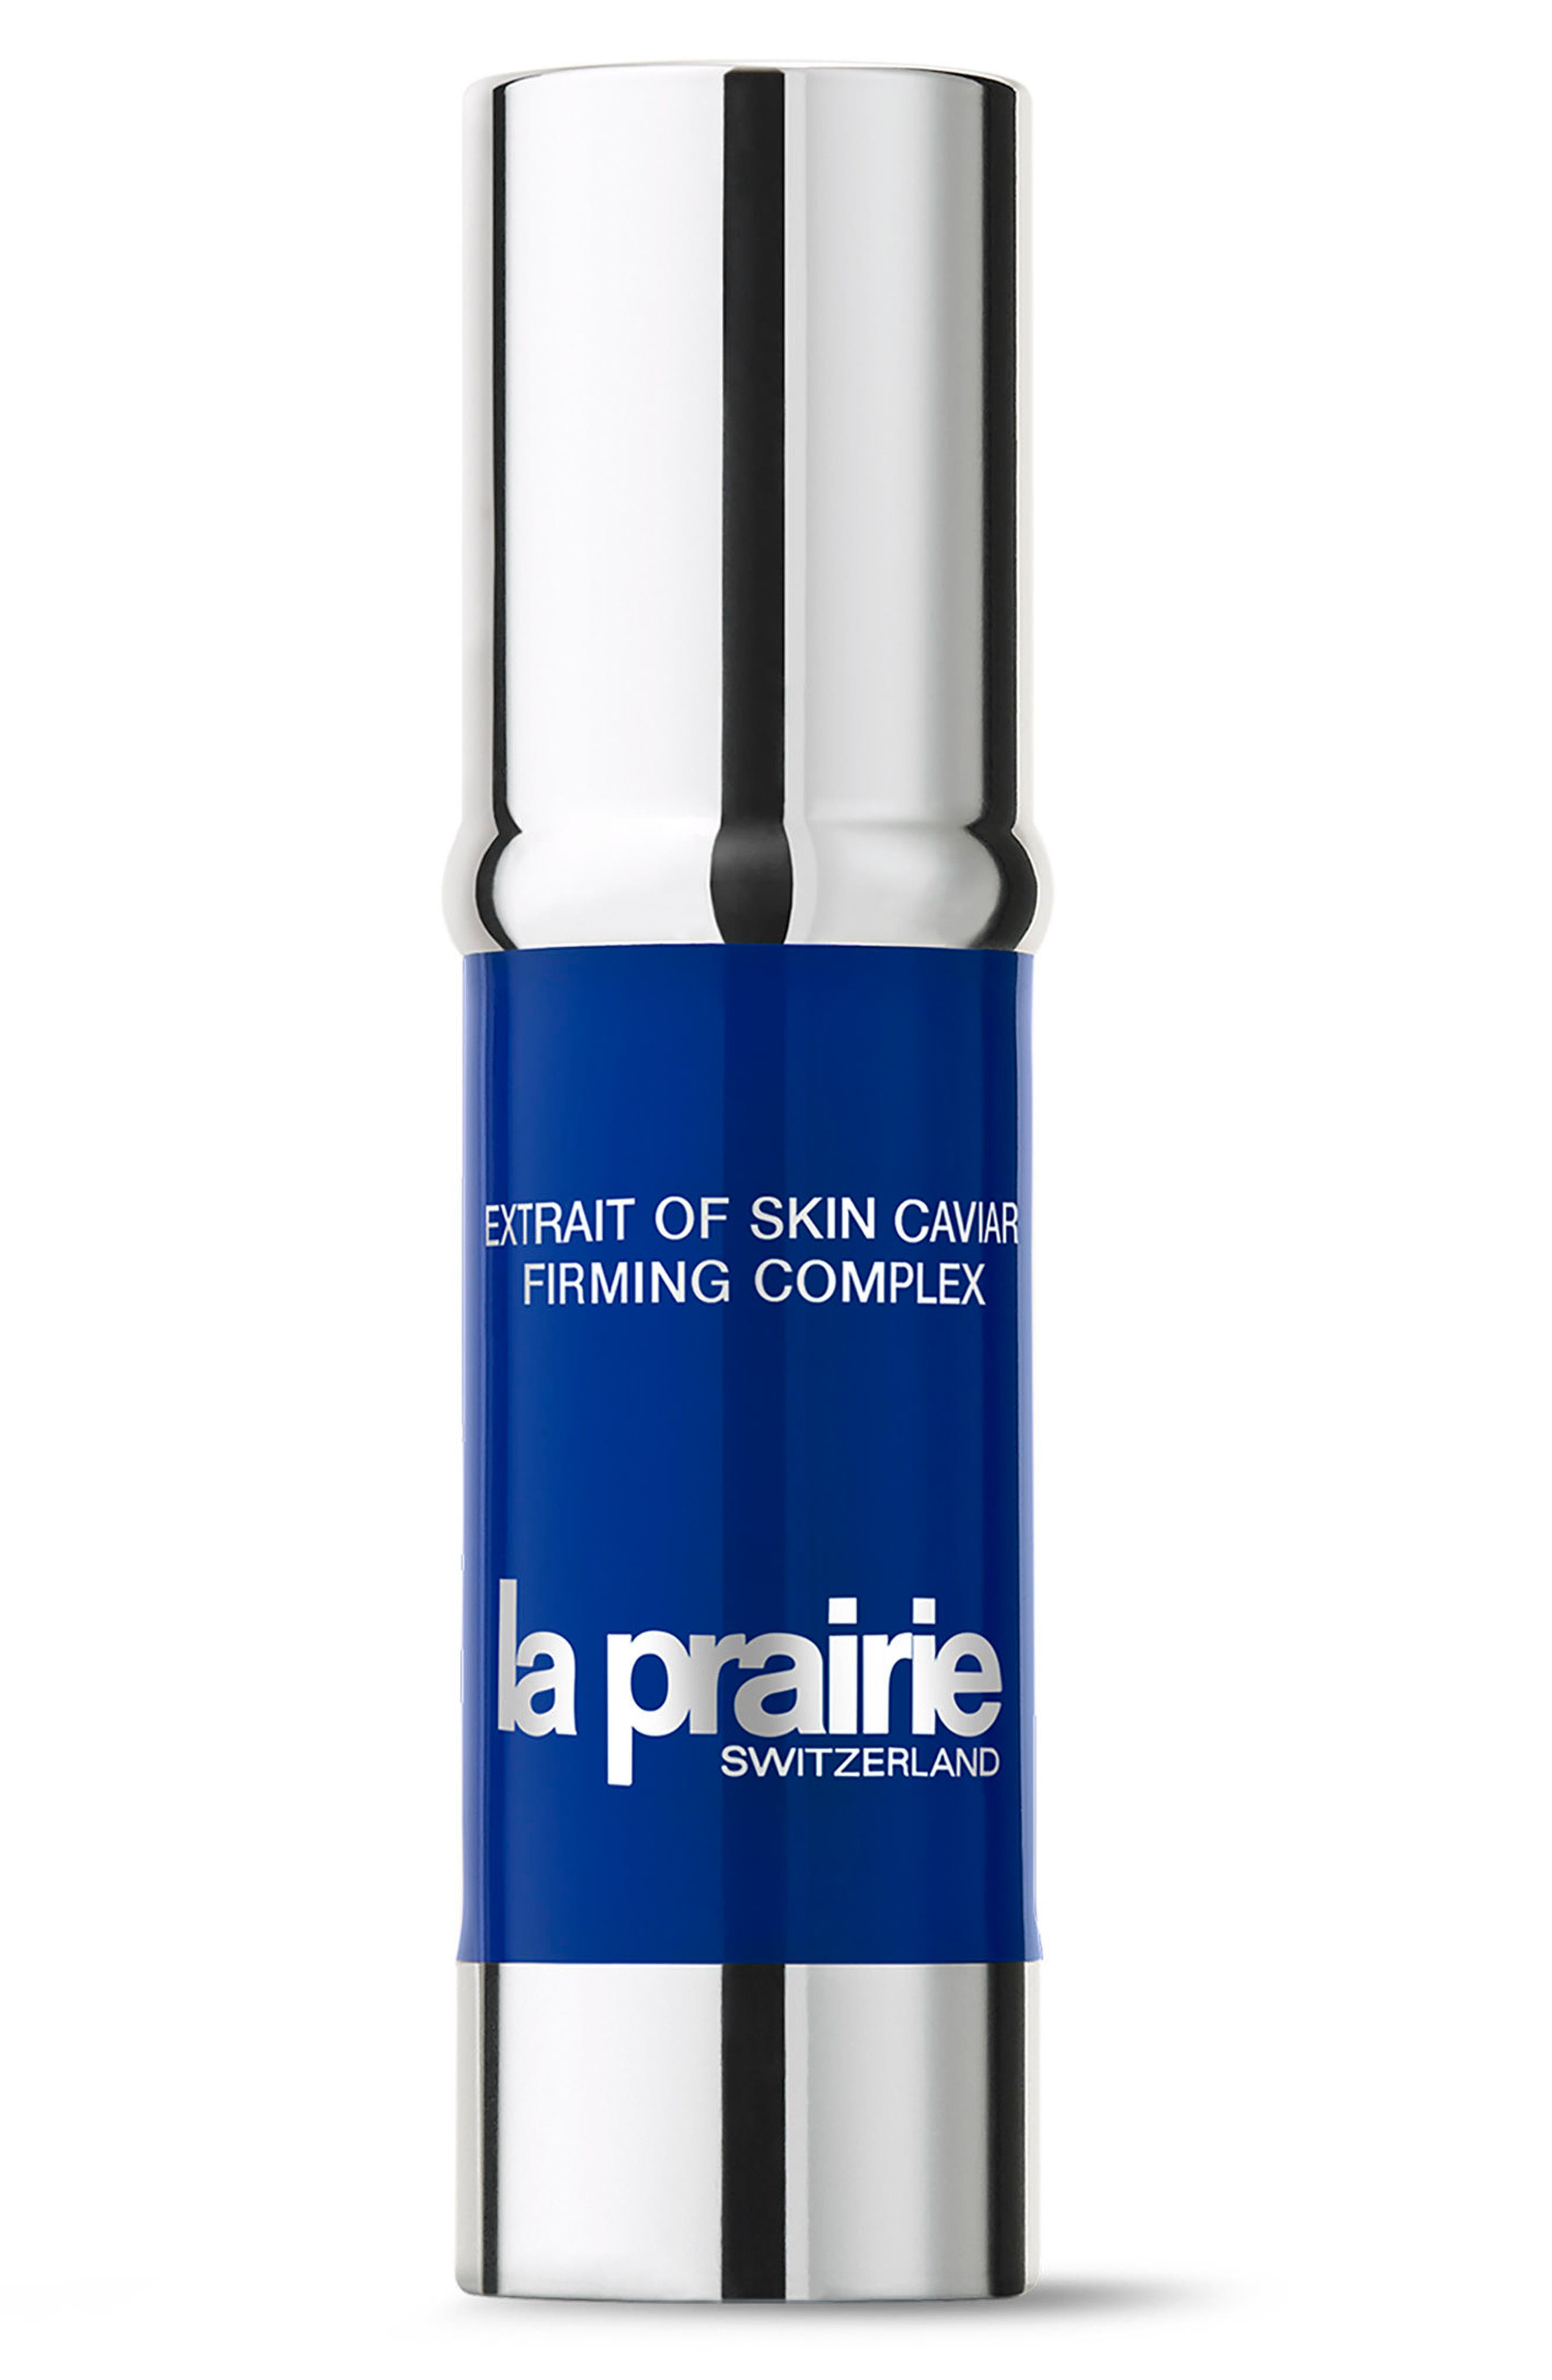 Alternate Image 1 Selected - La Prairie Extrait of Skin Caviar Firming Complex